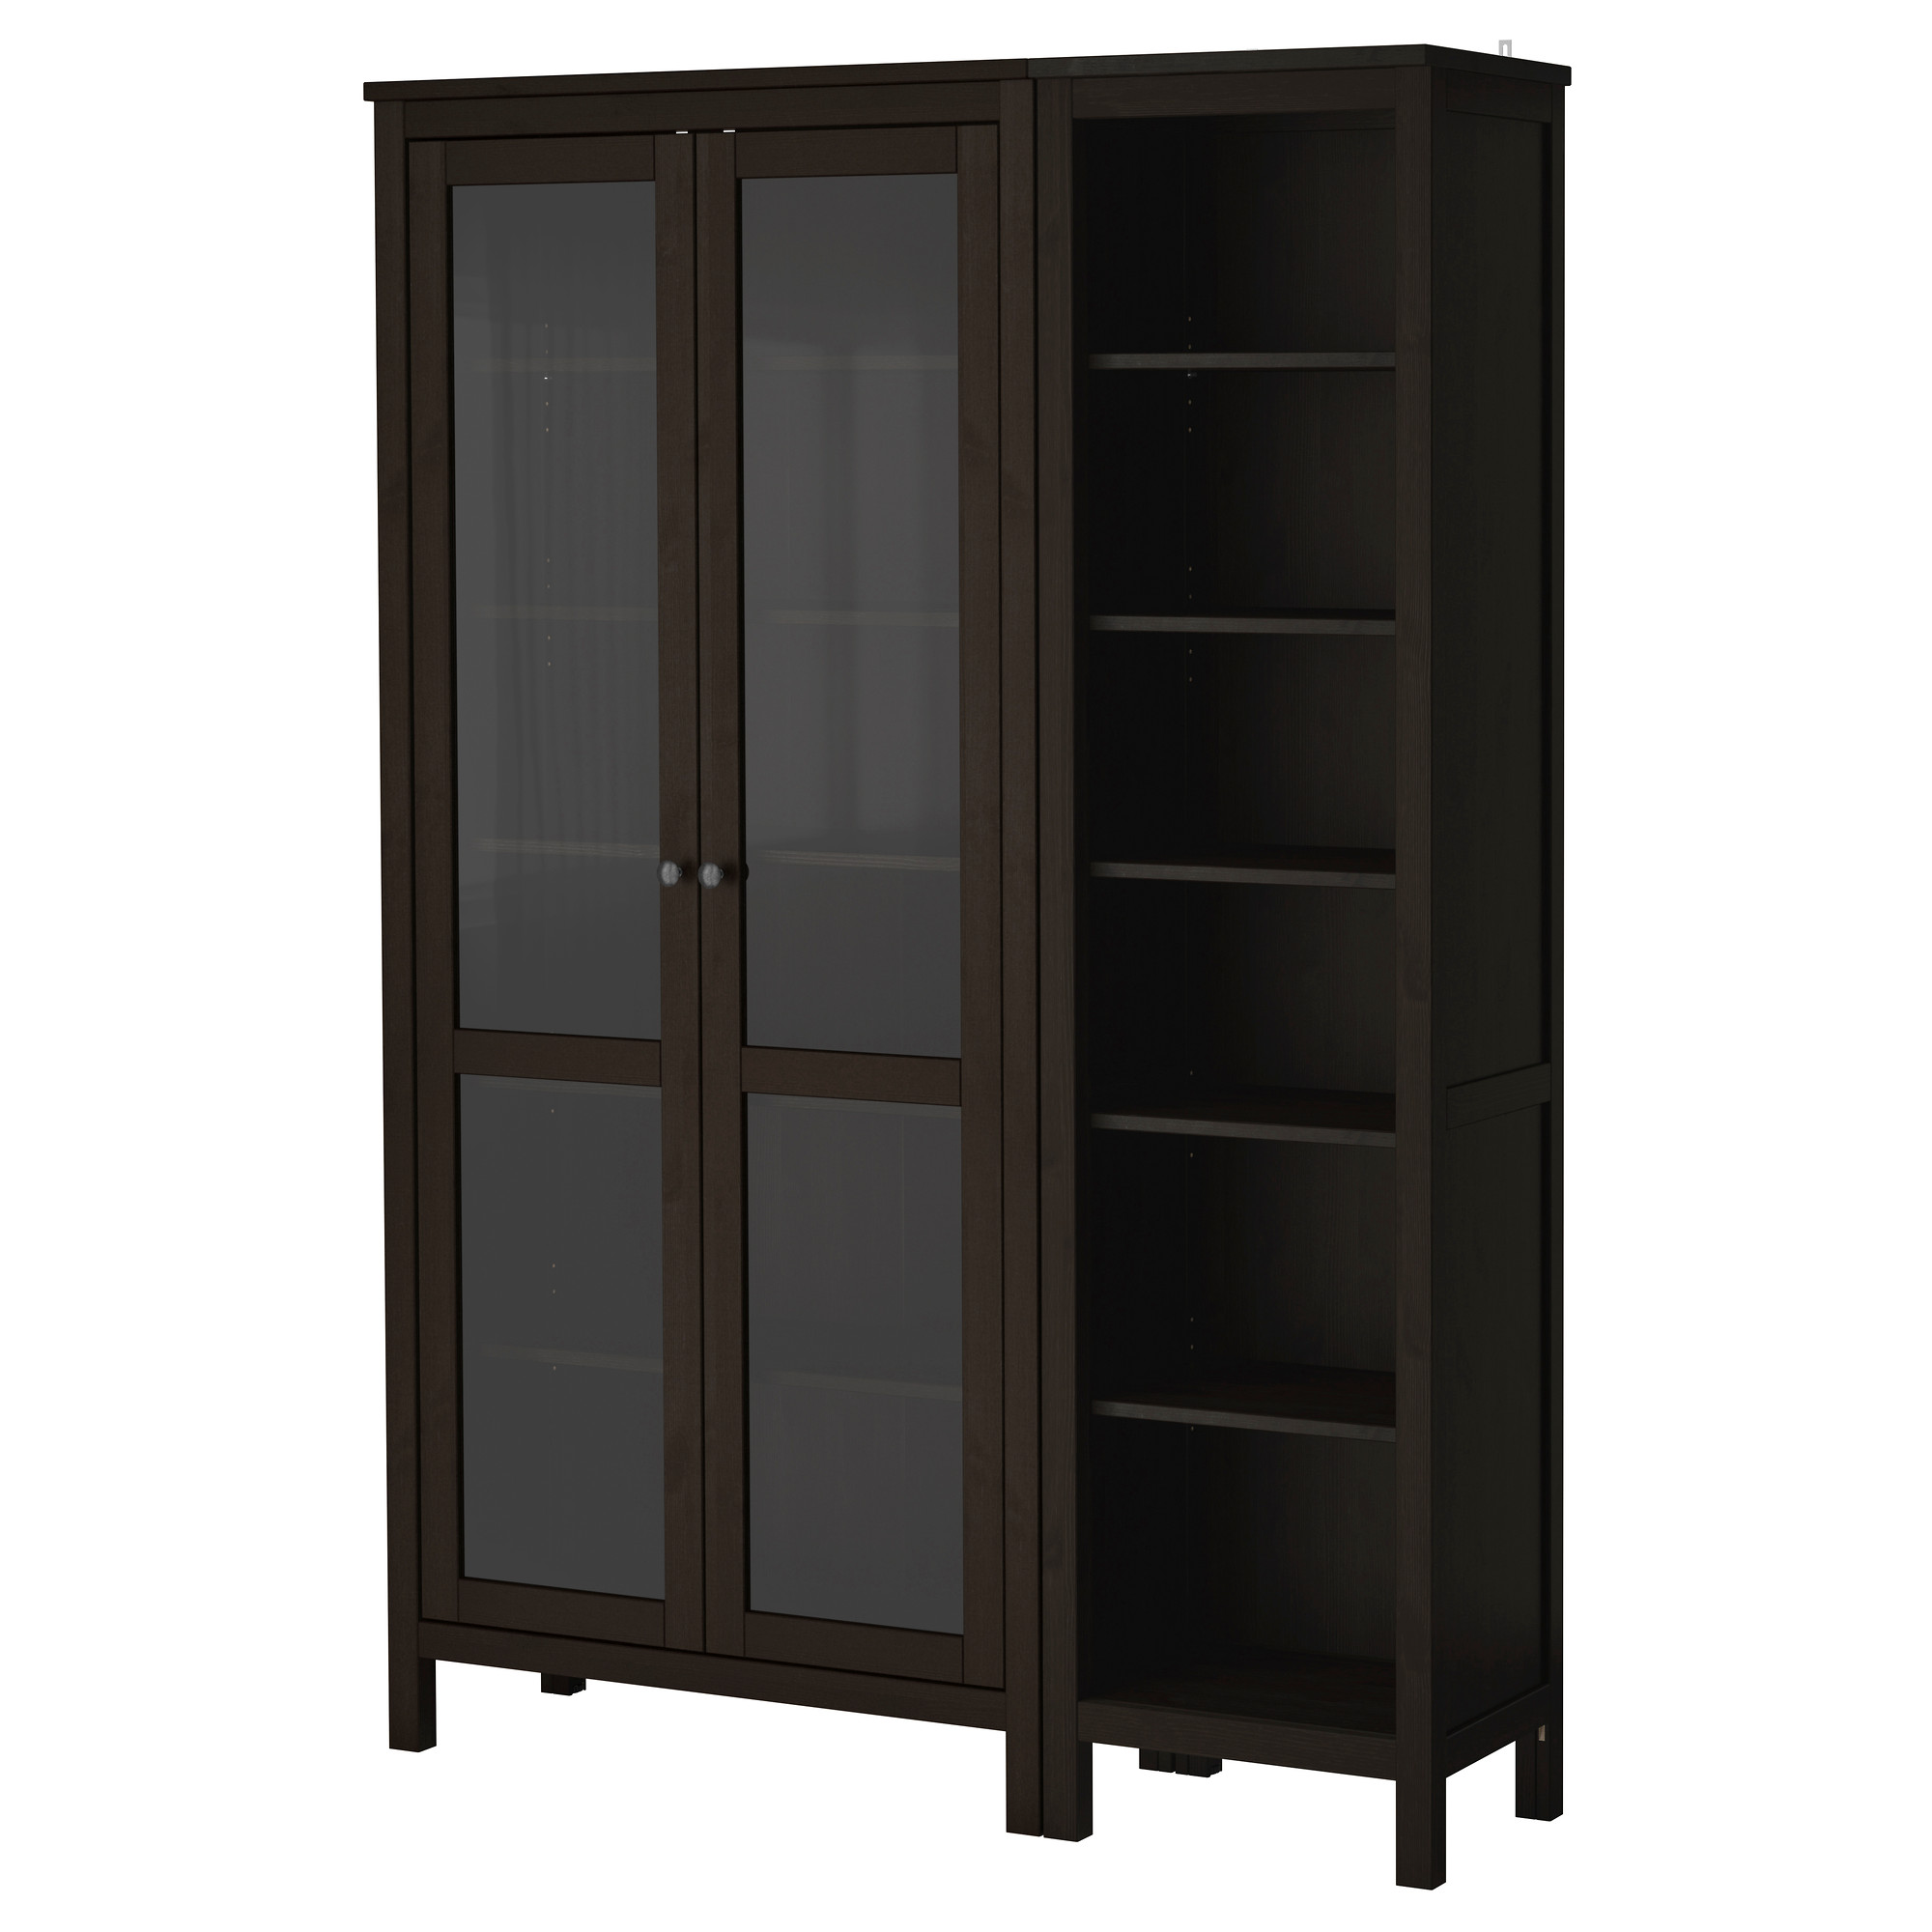 Merveilleux Wooden Storage Cabinet With Glass Doors In Dark Finishing Plus Modern  Design Combined With Shelves Aside